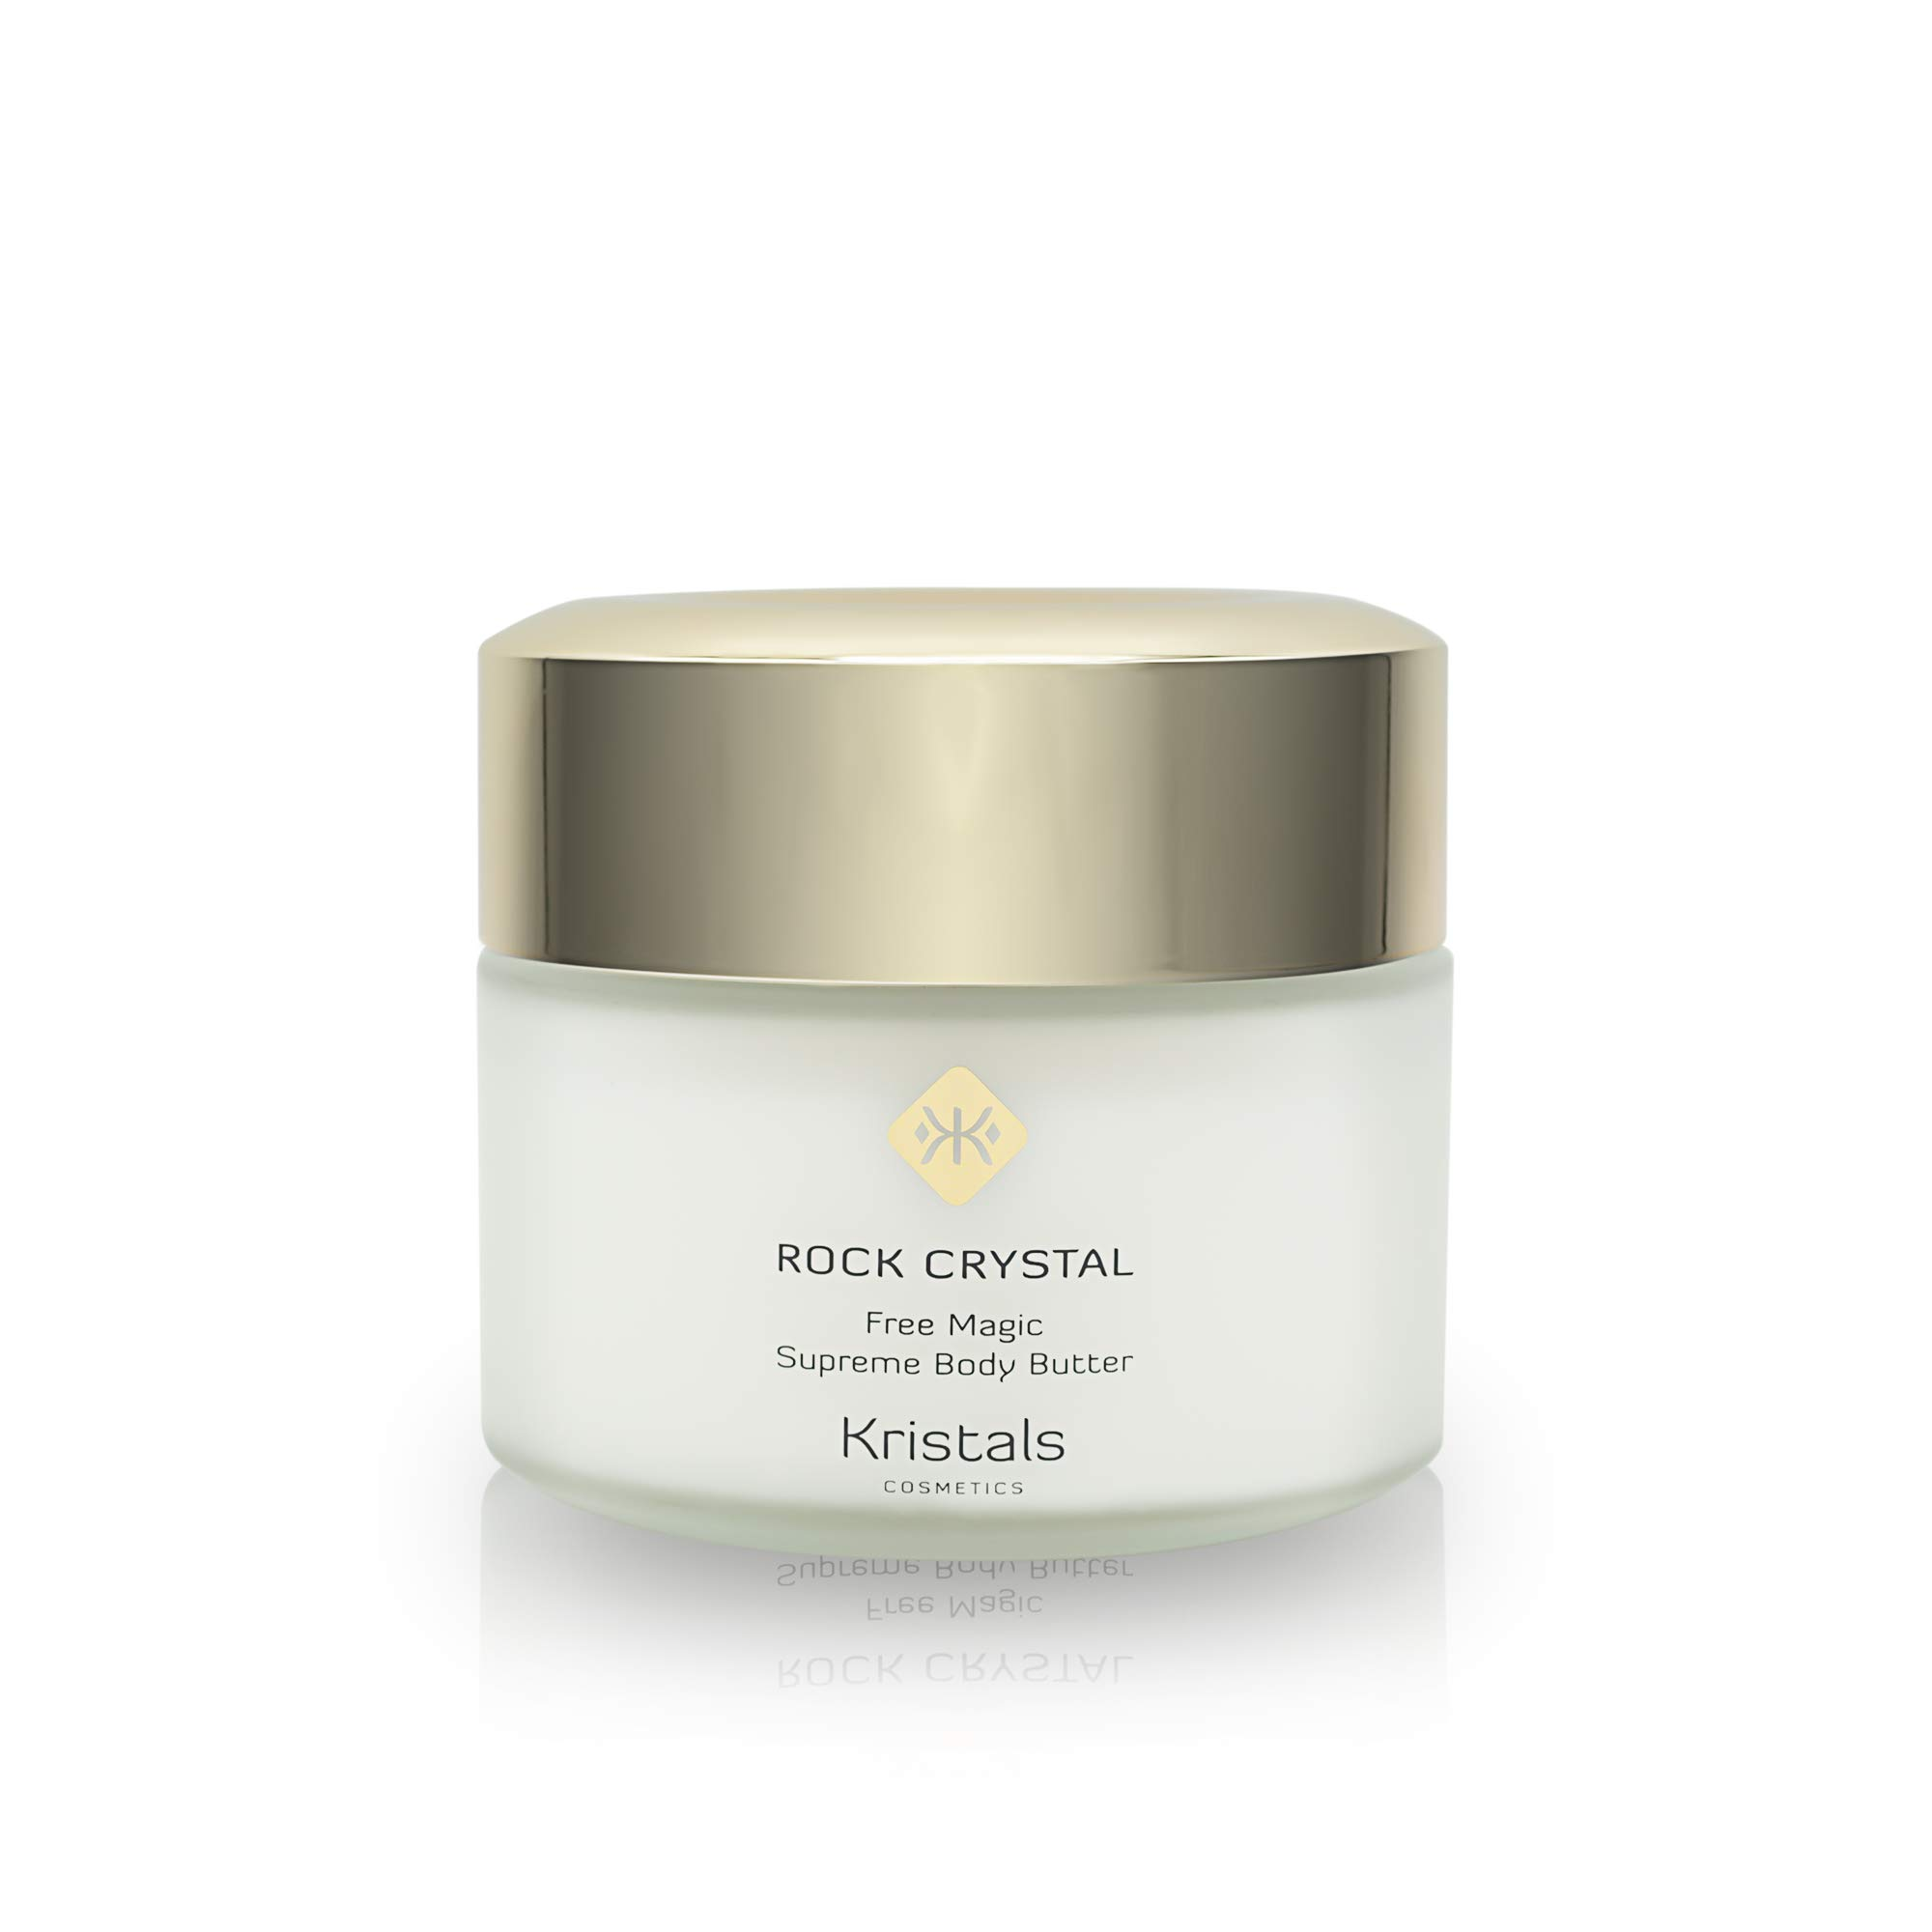 Kristals Cosmetics | Rock Crystal Free Magic Supreme Body Butter by Kristals Cosmetics (Image #1)